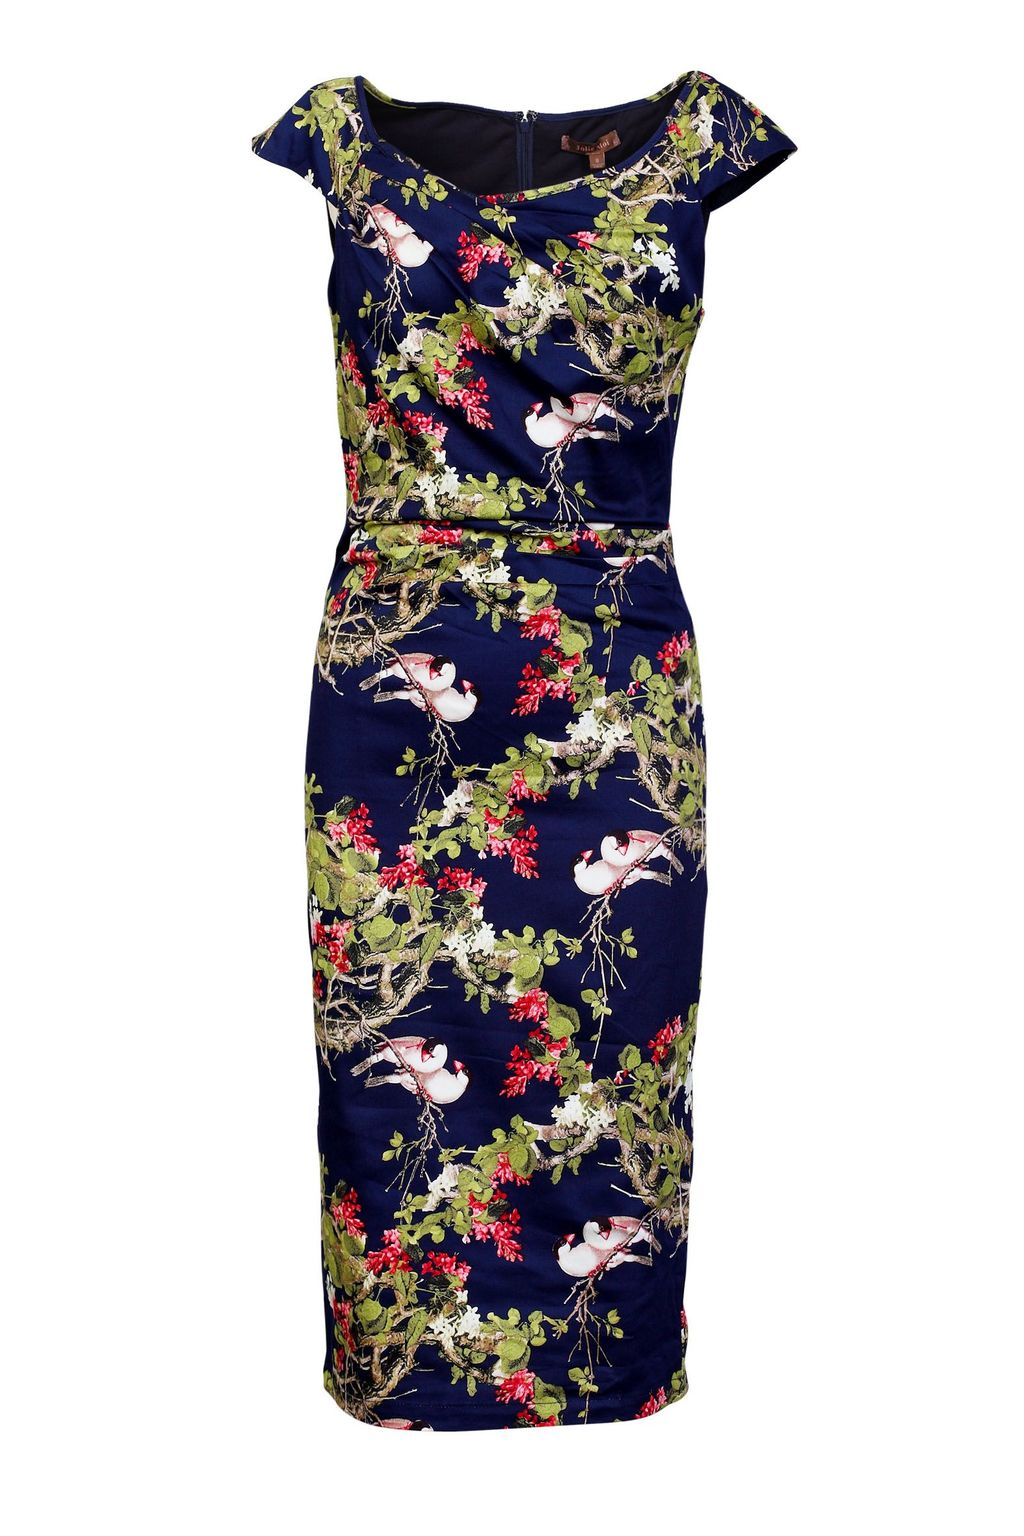 Retro Floral Print Ruched Dress, Navy - style: shift; length: below the knee; neckline: round neck; sleeve style: capped; fit: tailored/fitted; predominant colour: navy; secondary colour: lime; occasions: occasion; sleeve length: short sleeve; pattern type: fabric; pattern size: standard; pattern: florals; texture group: other - light to midweight; season: a/w 2015; wardrobe: event